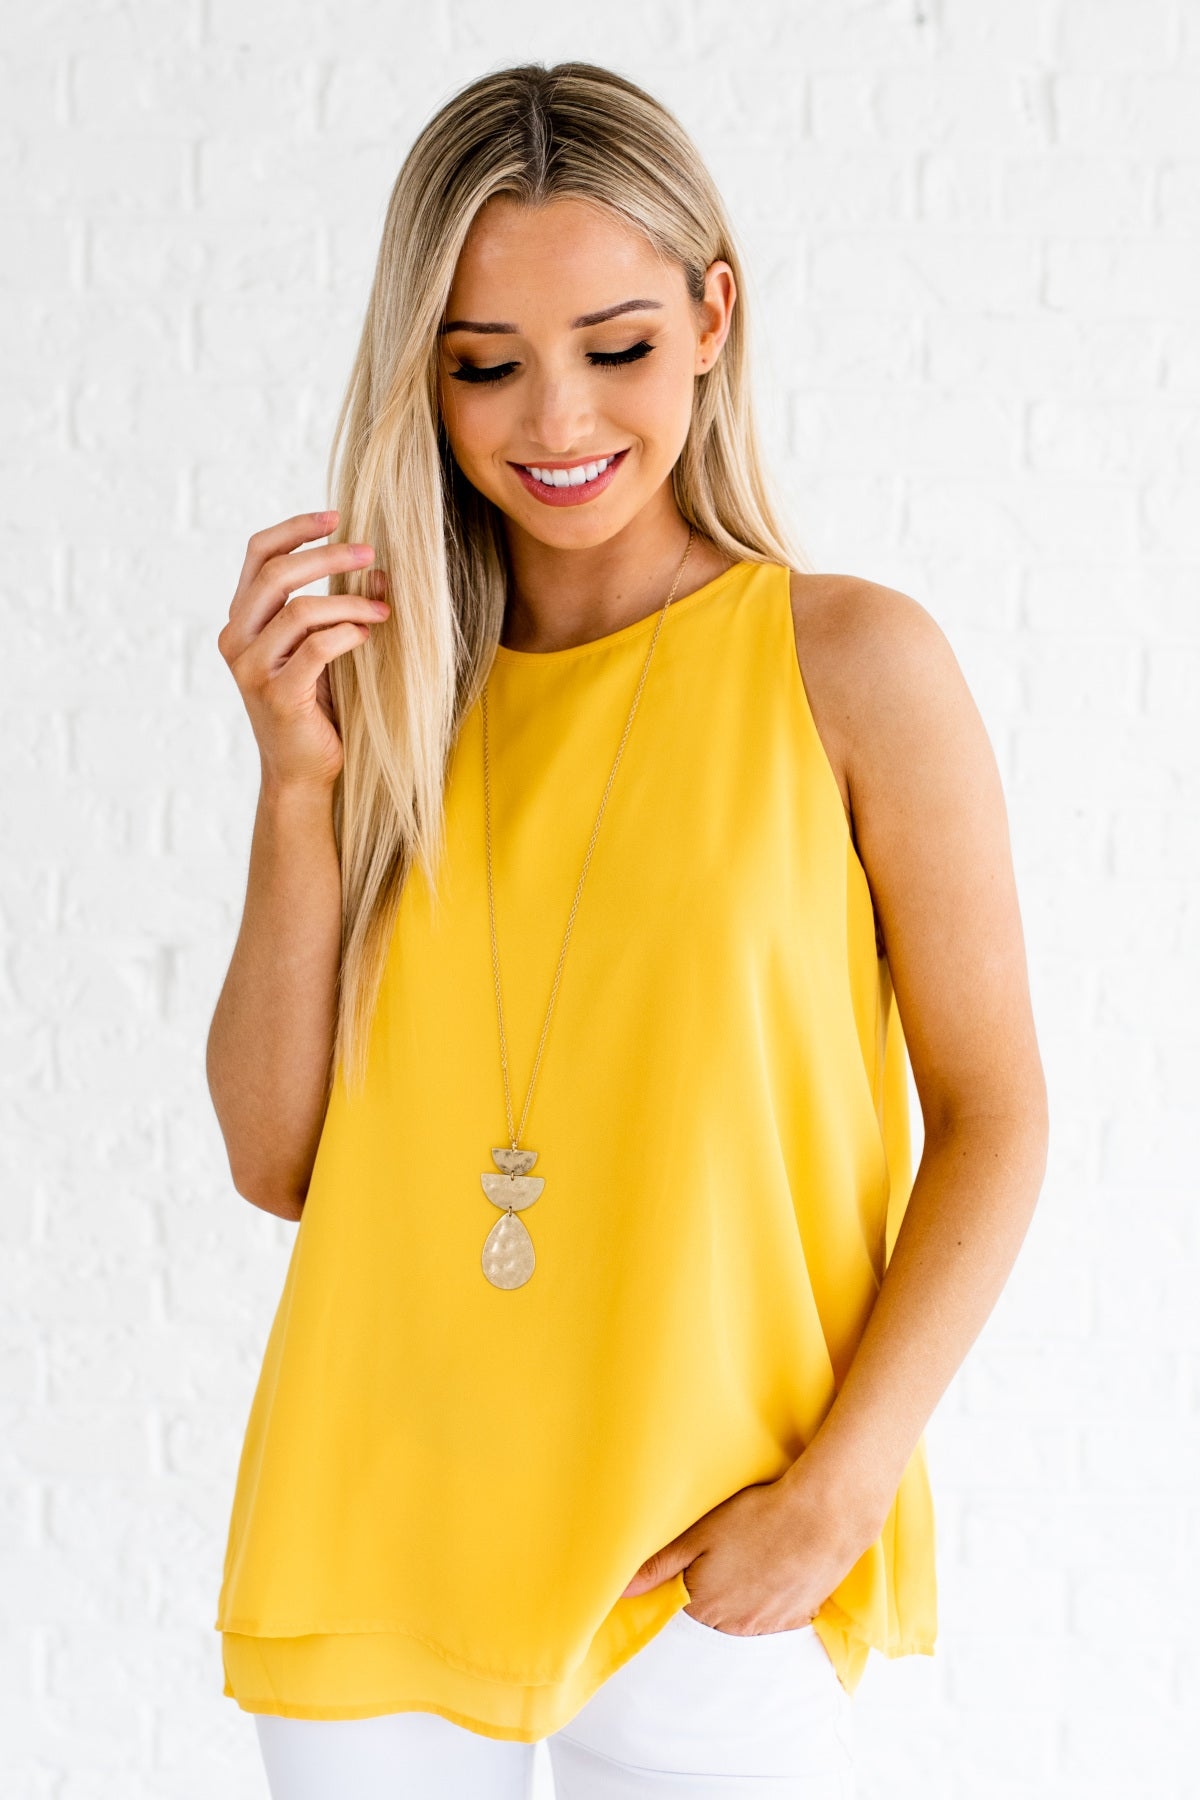 Goldenrod Yellow Layered Tank Blouses Womens Business Casual Fashion